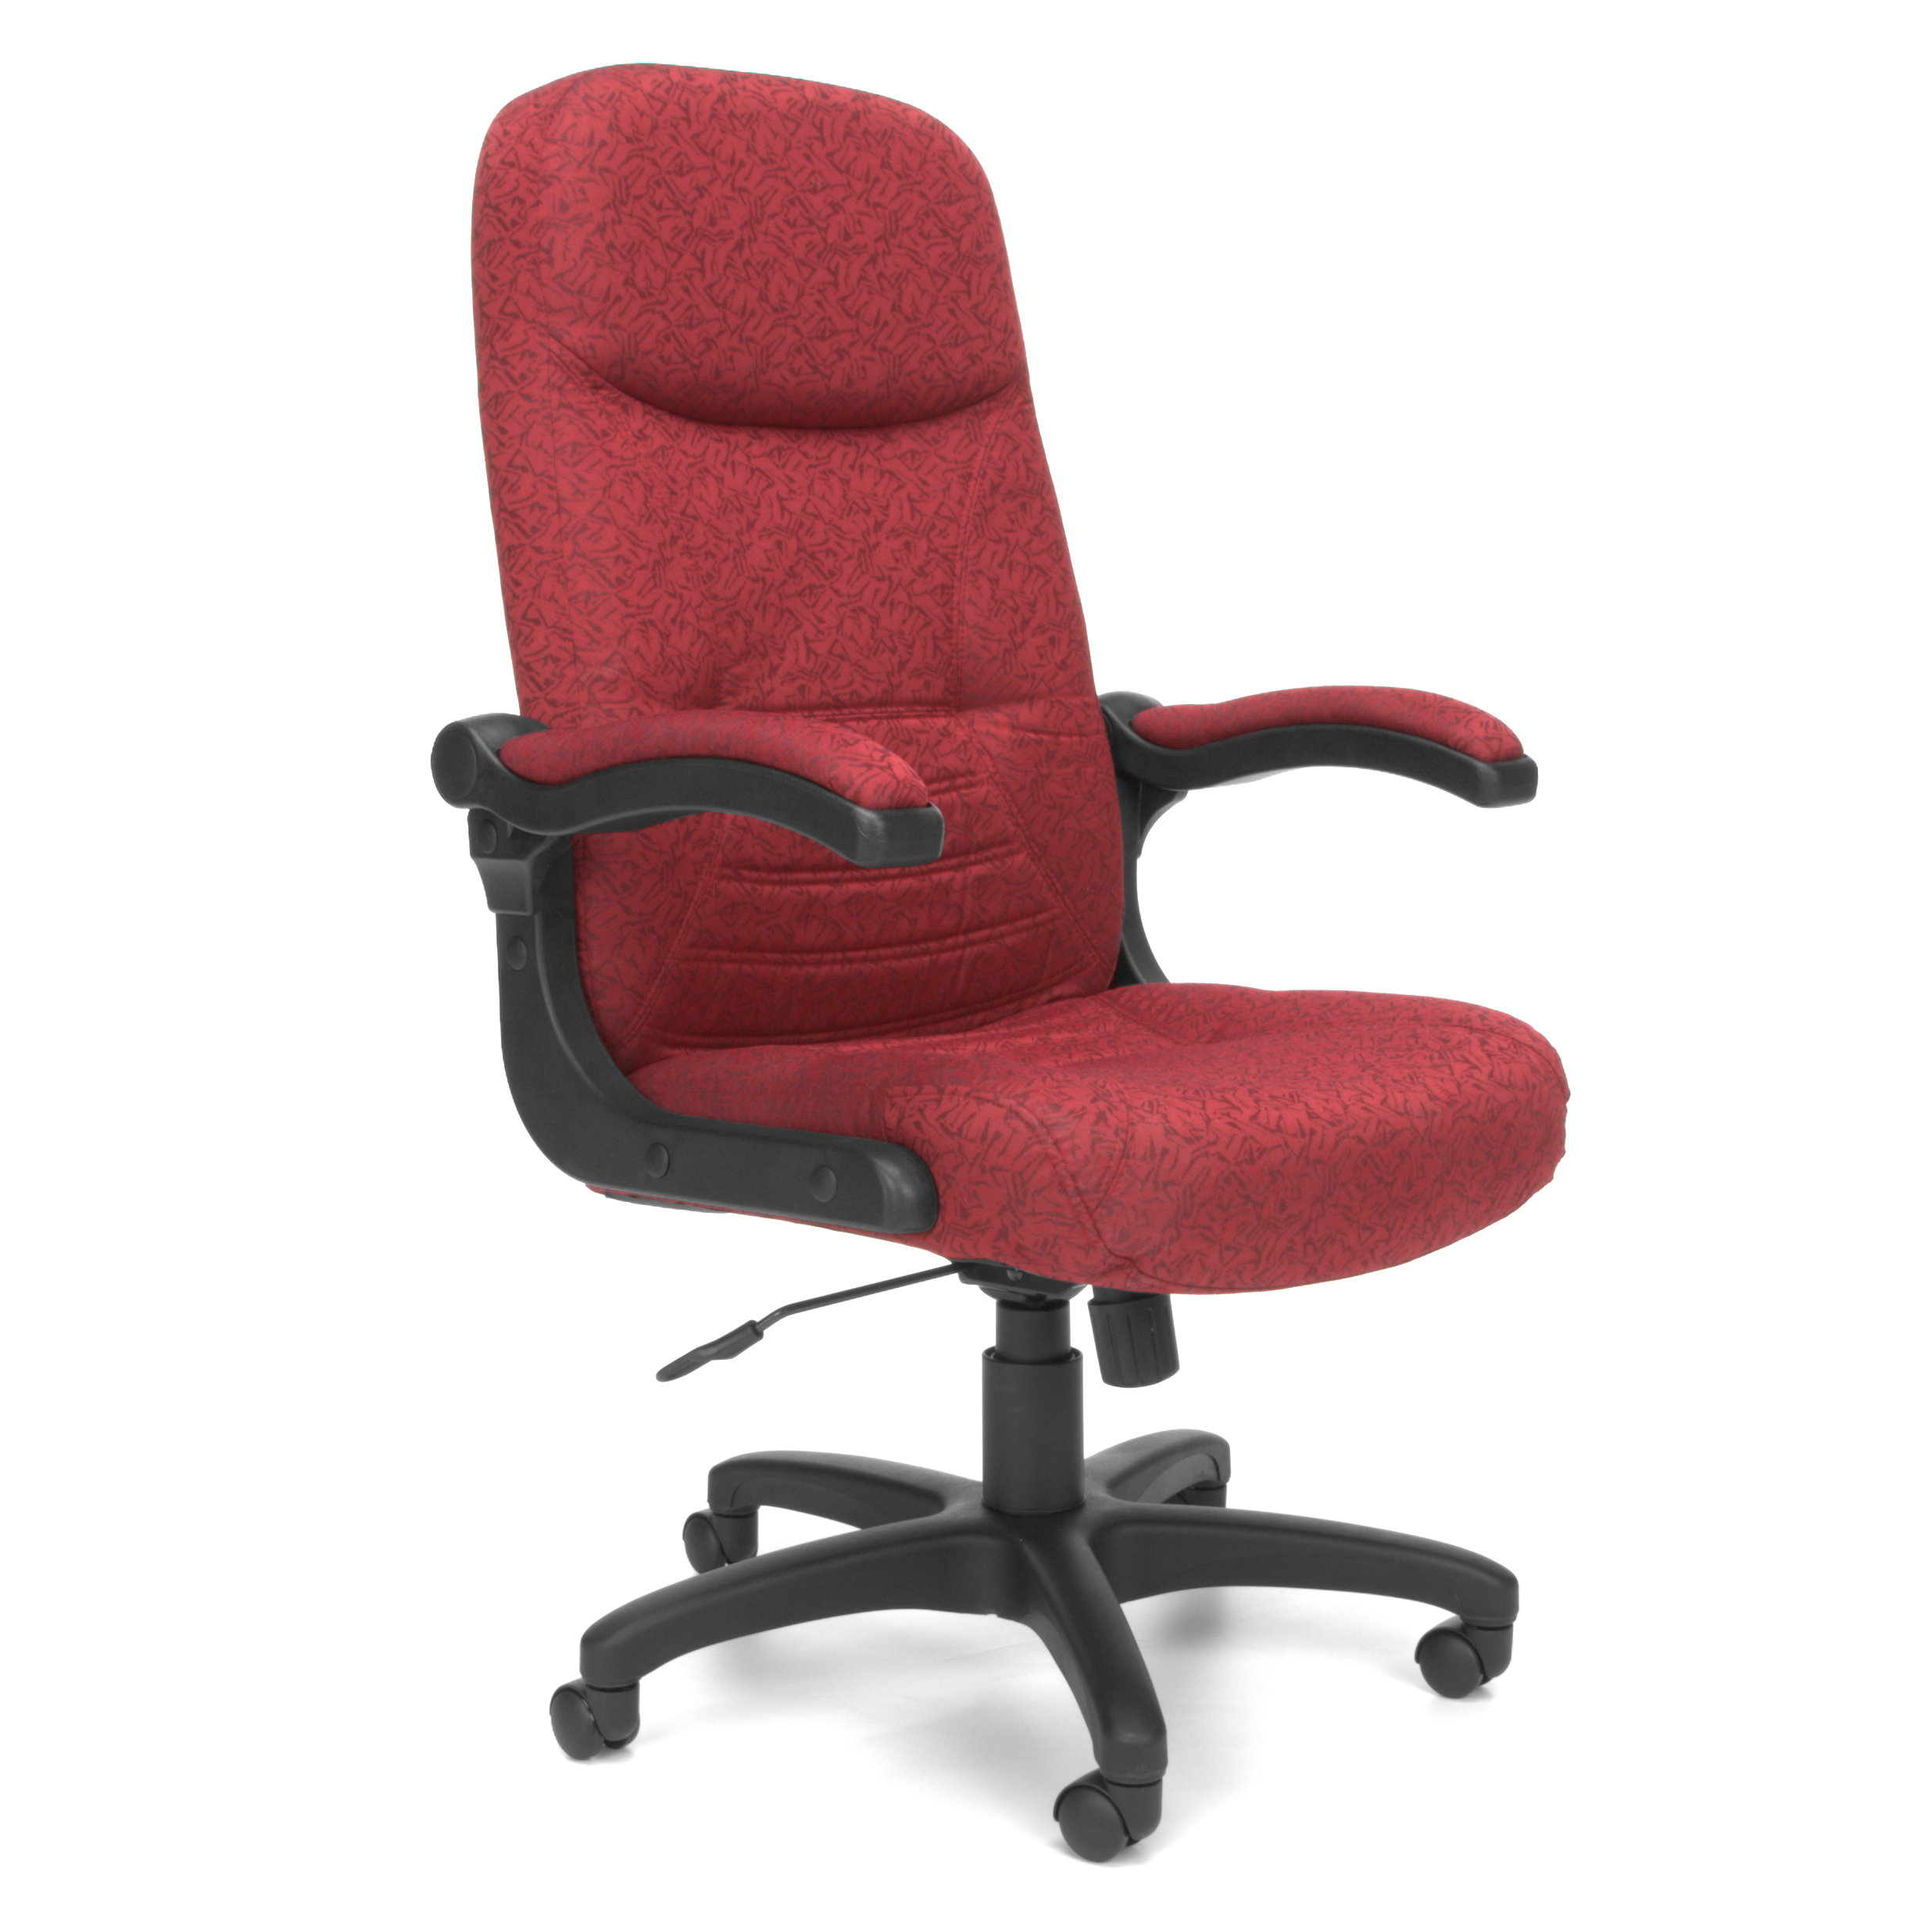 OFM Stimulus Series Model 522-LX Leatherette Executive High-Back Chair with Fixed Arms, Black